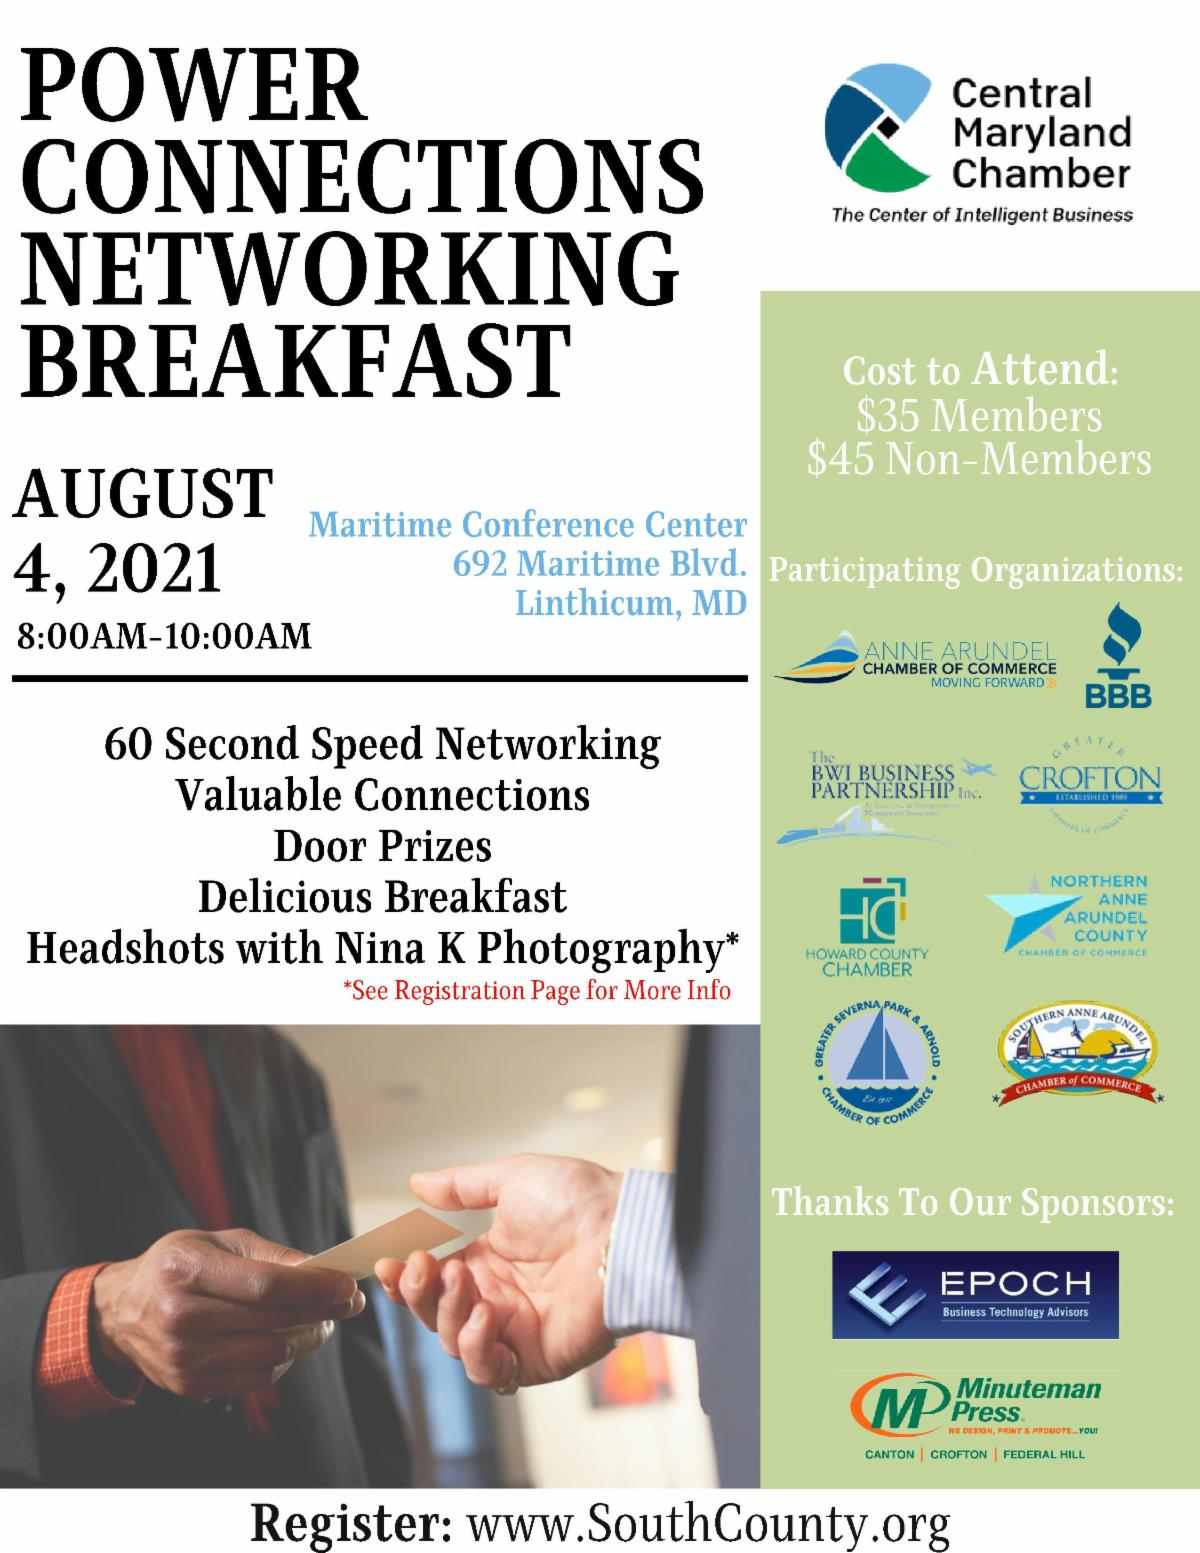 IN PERSON Power Connections Networking Breakfast 2021 (Balto & DC Metro) @ Maritime Conference Center